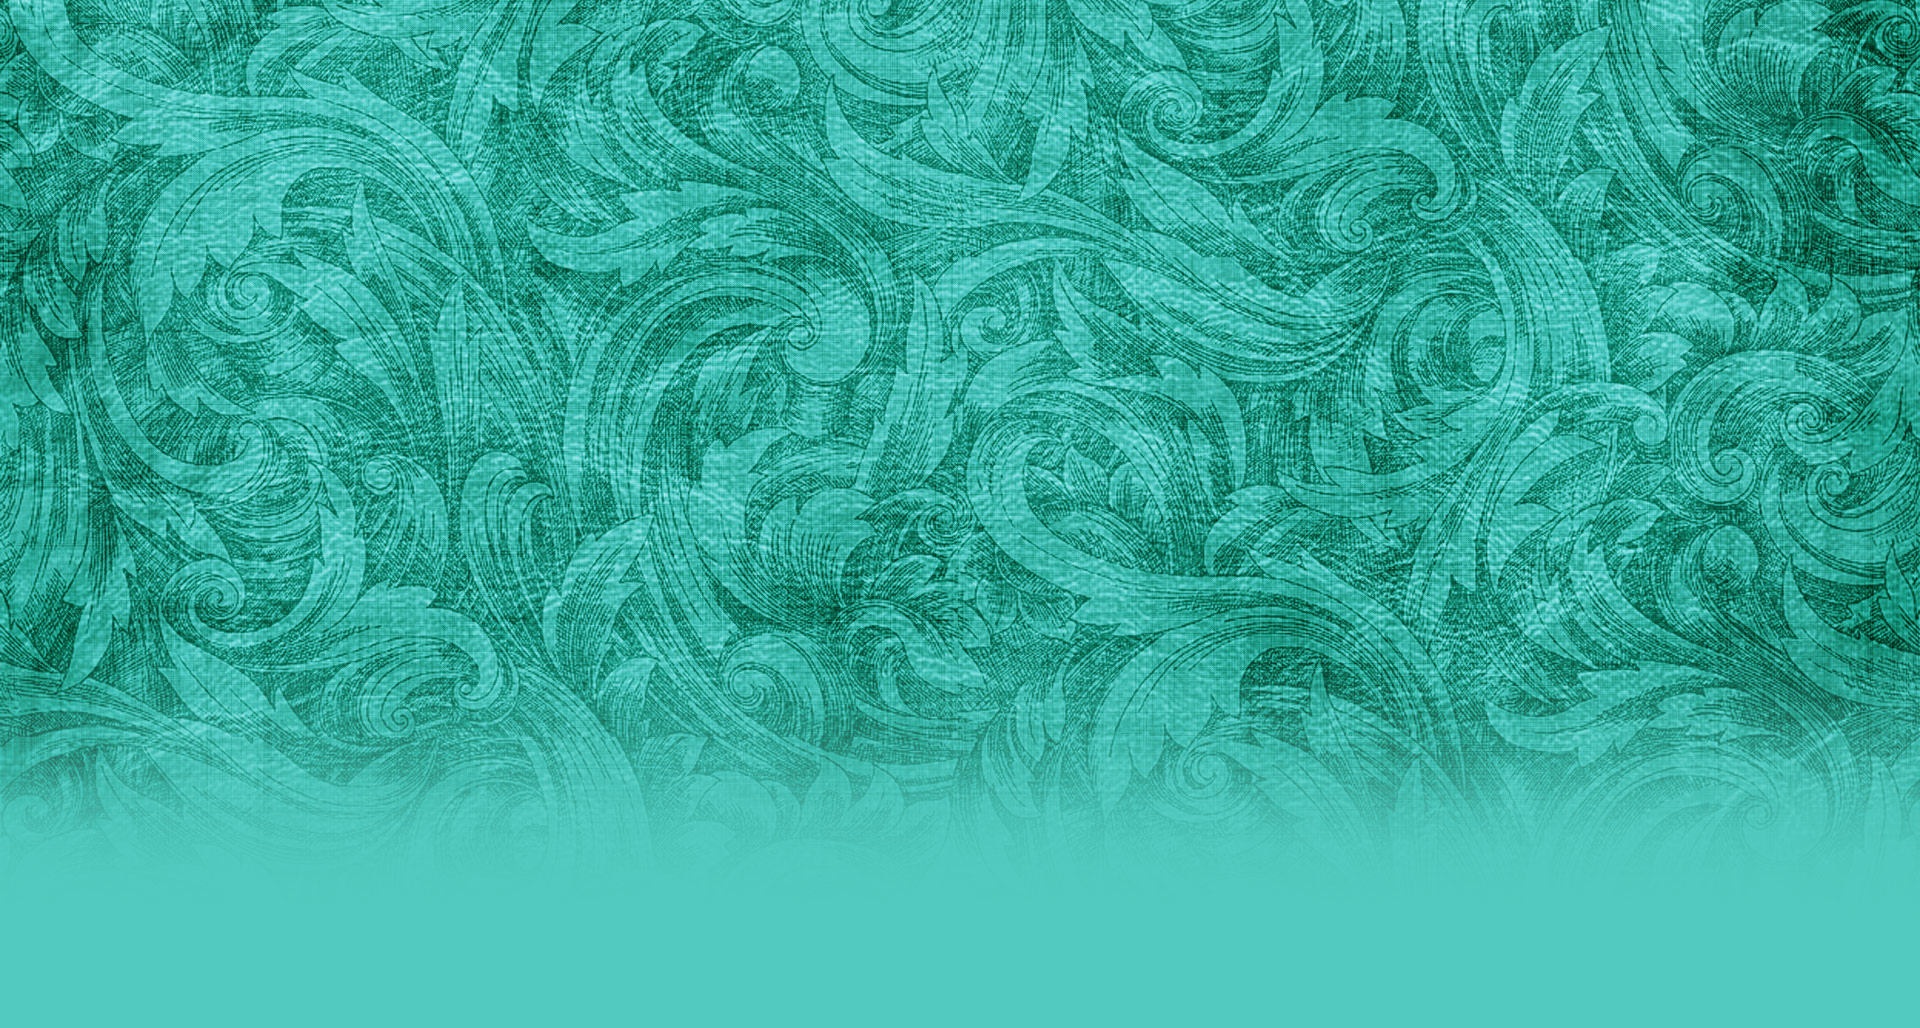 turquoise swirls design wallpapers - photo #5